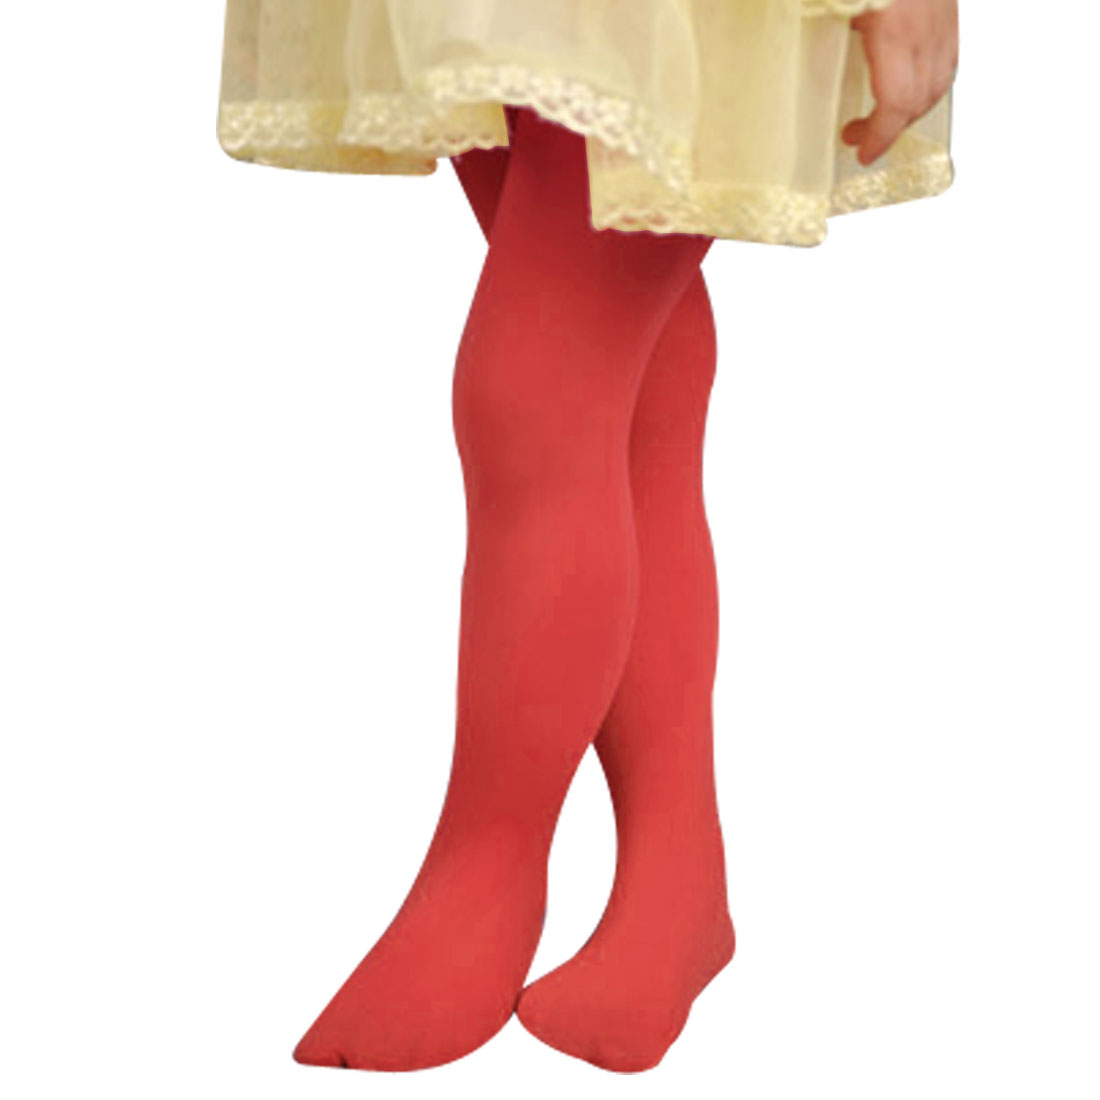 11-15T Girls Elastic Footed Pantyhose Hosiery Tights Collant Watermelon Red XL